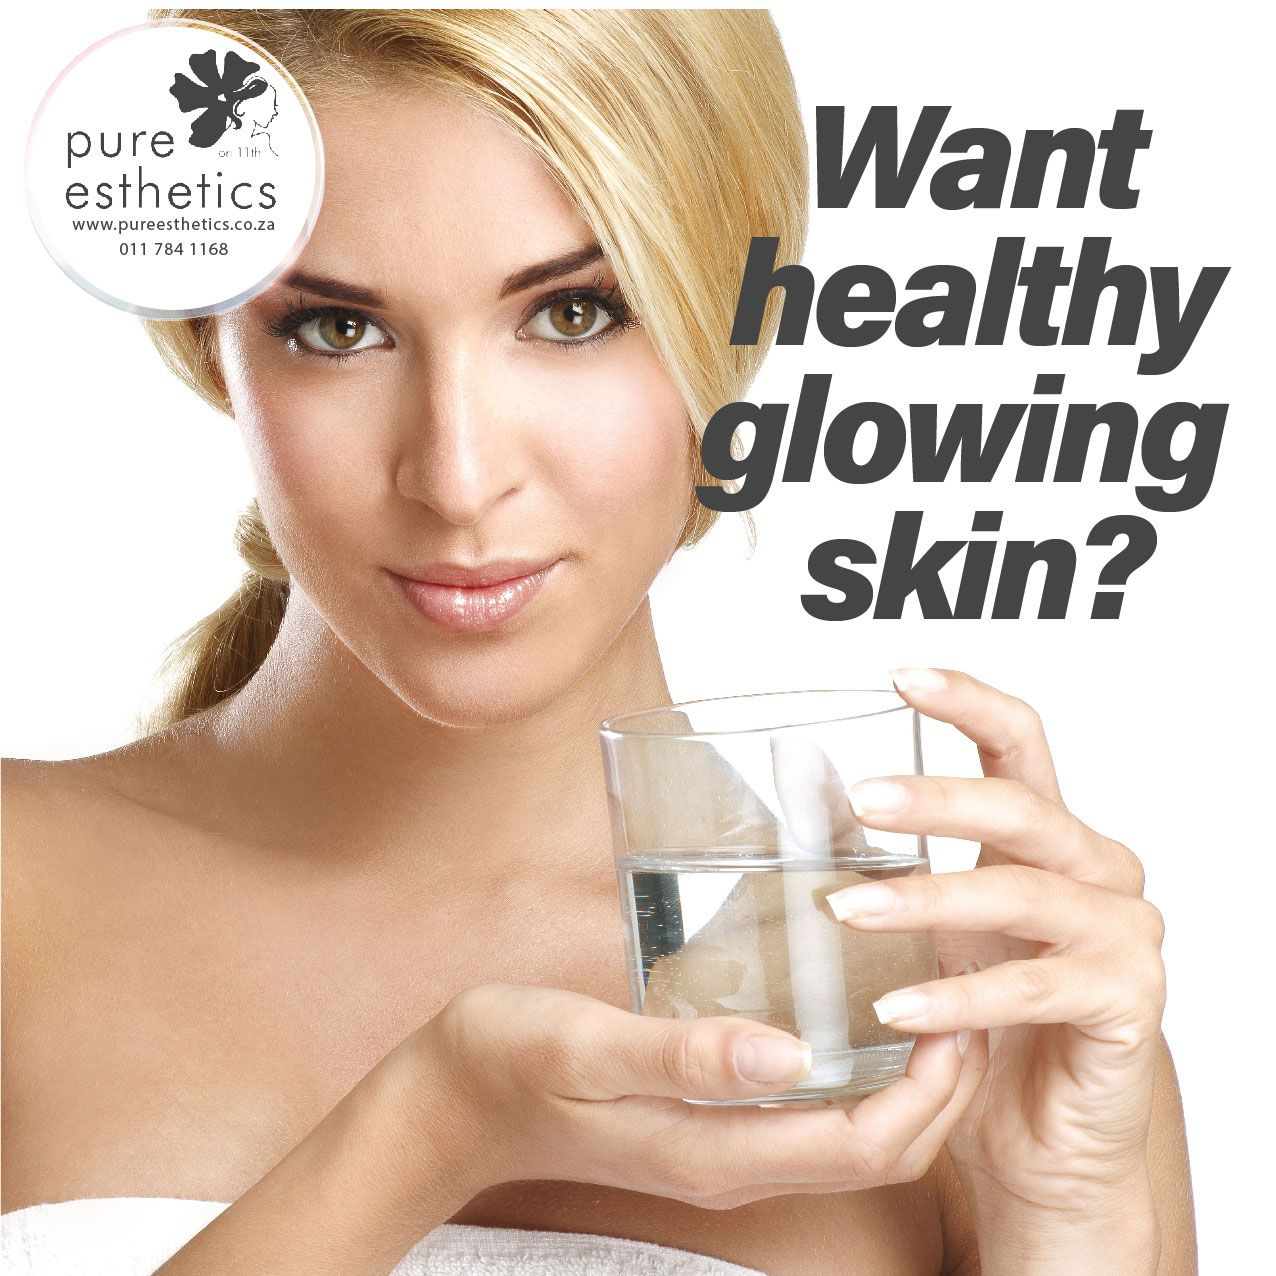 Drinking Water Is One Of The Best Things You Can Do To Keep Your Skin In Shape It Keeps Your Skin Moist And Th Healthy Glowing Skin Esthetics Pure Products